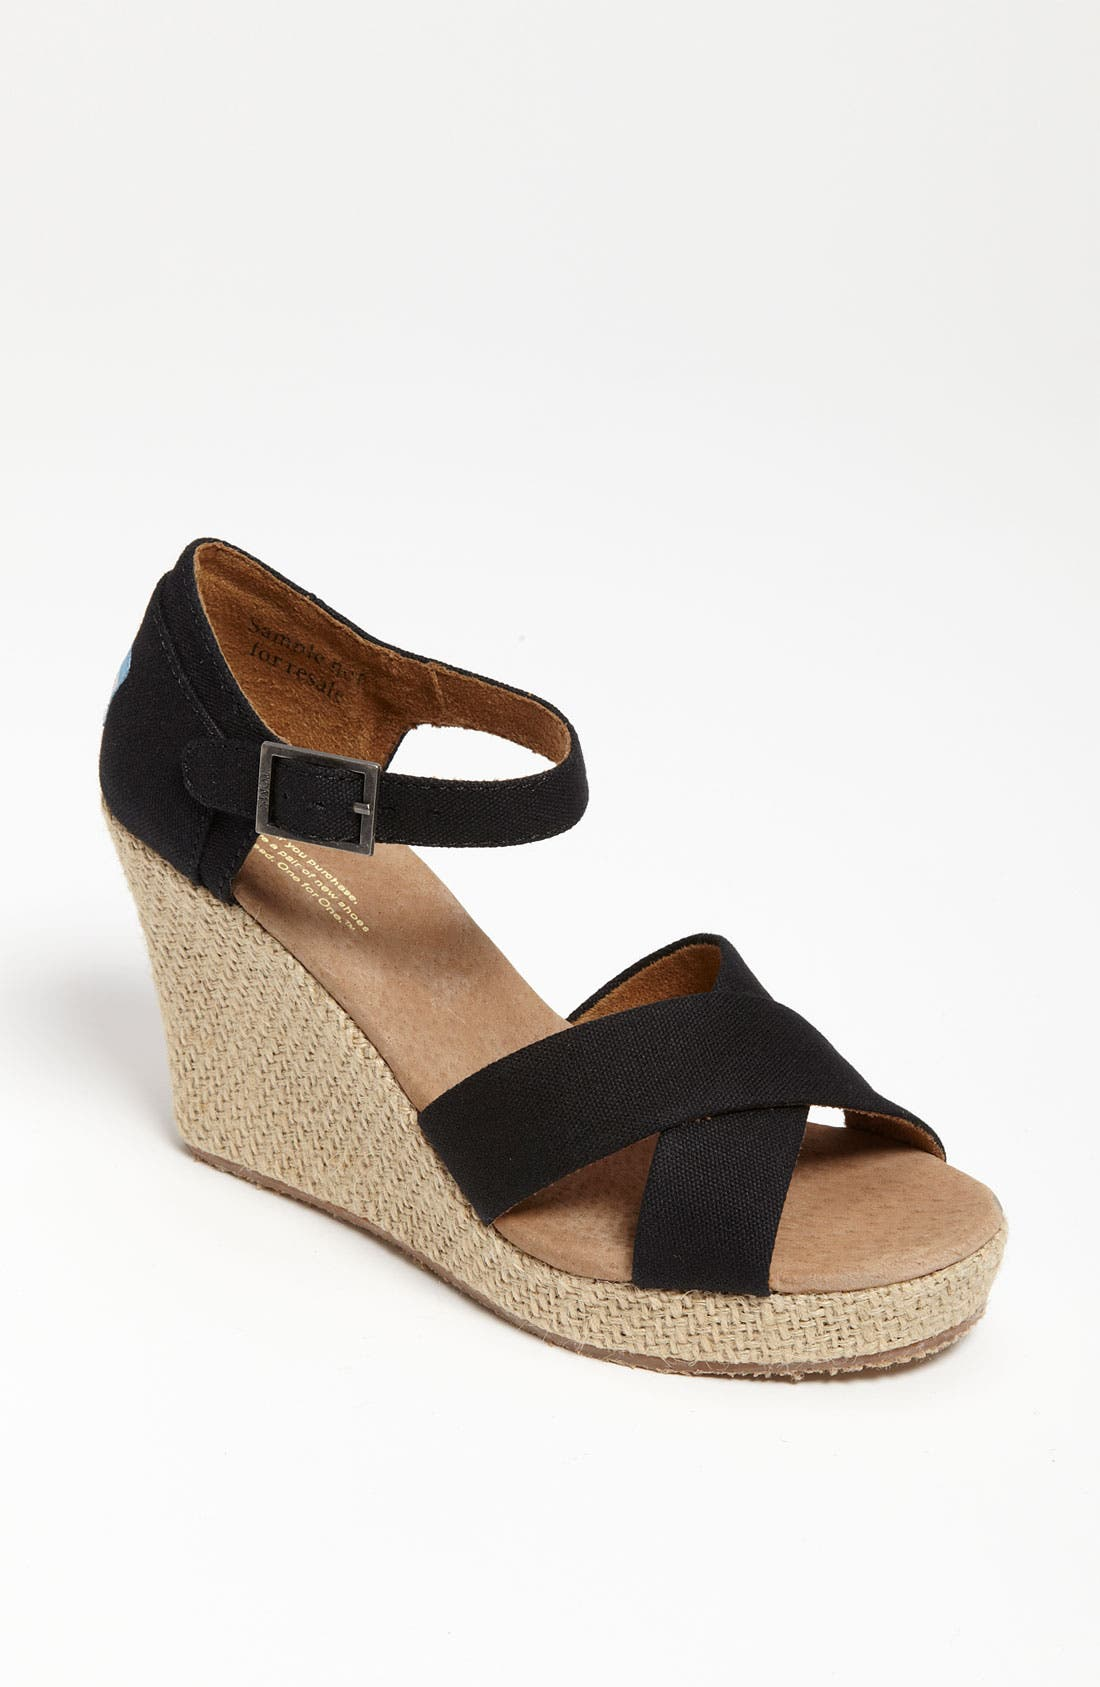 Main Image - TOMS Canvas Wedge Sandal